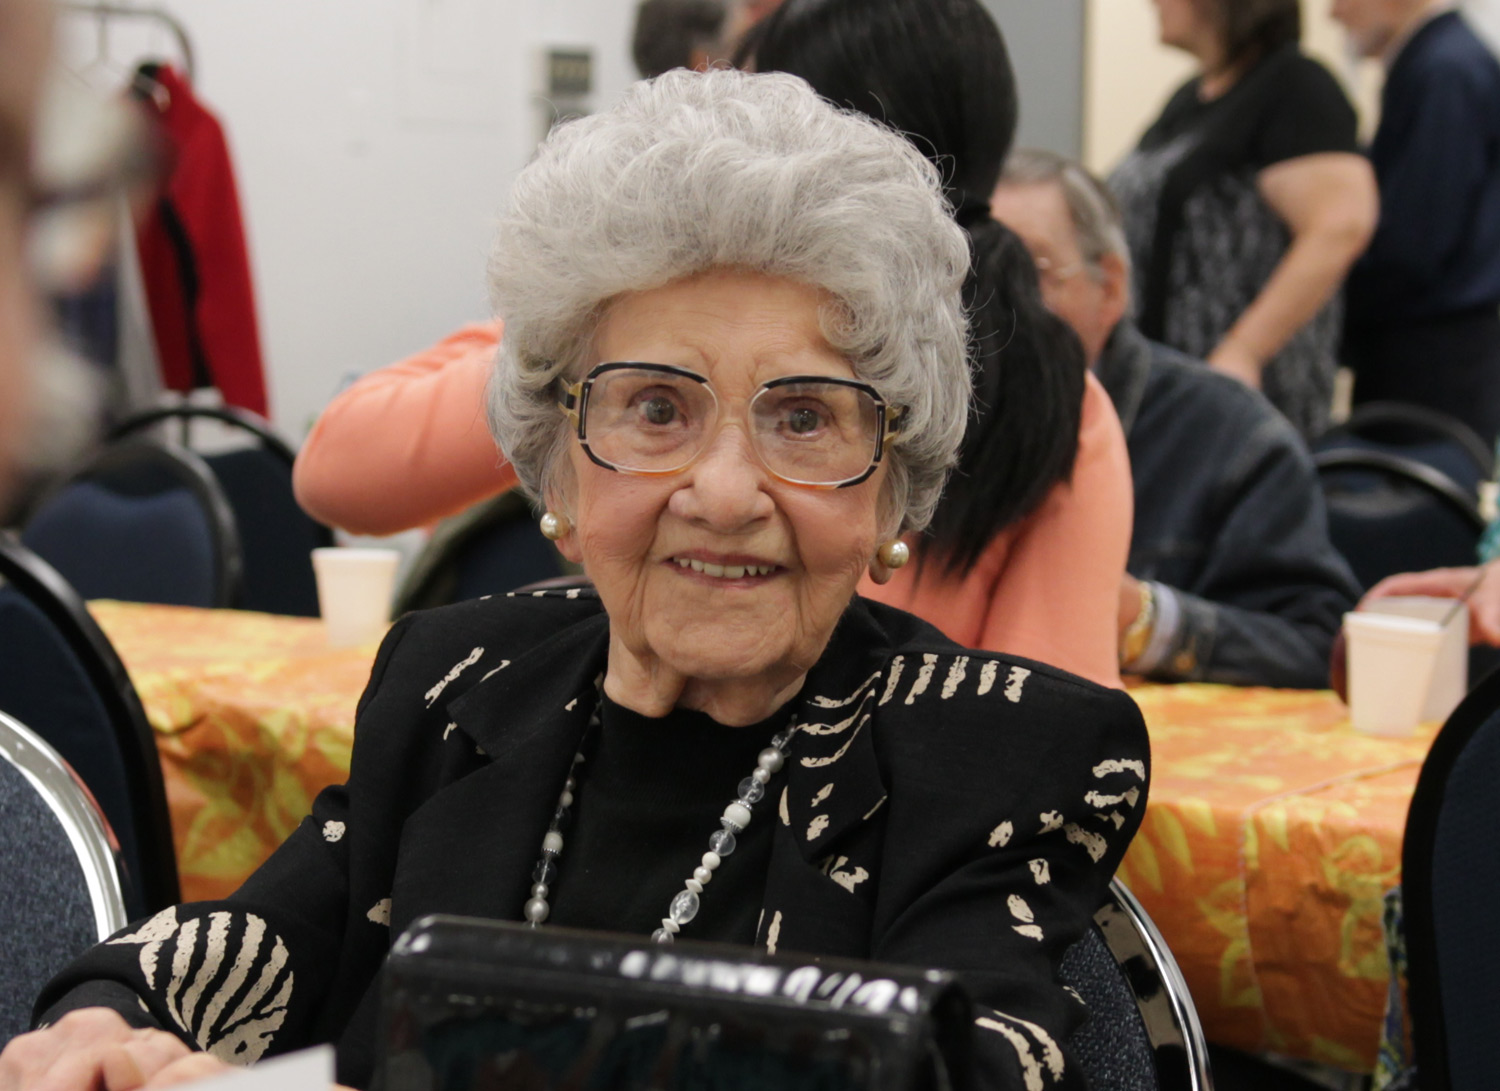 Frances Kusner, who turned 100 last April, volunteered with CVITP for 41 years. She retired this year. Thank you, Frances! - United Way Winnipeg